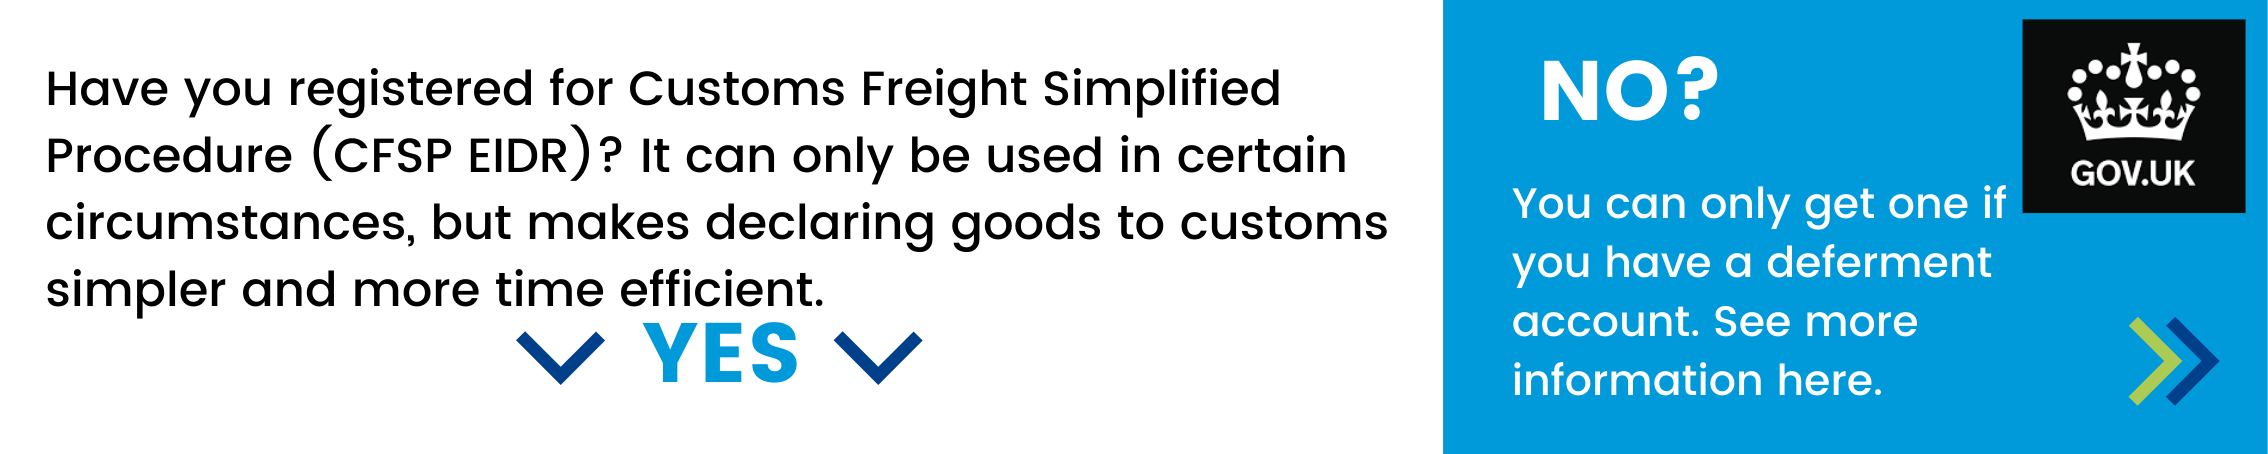 Have you registered for Customs Freight Simplified Procedure (CFSP EIDR)? It can only be used in certain circumstances, but makes declaring goods to customs simpler and more time efficient. If not - you can only get one if you have a deferment account - click here to see more information.